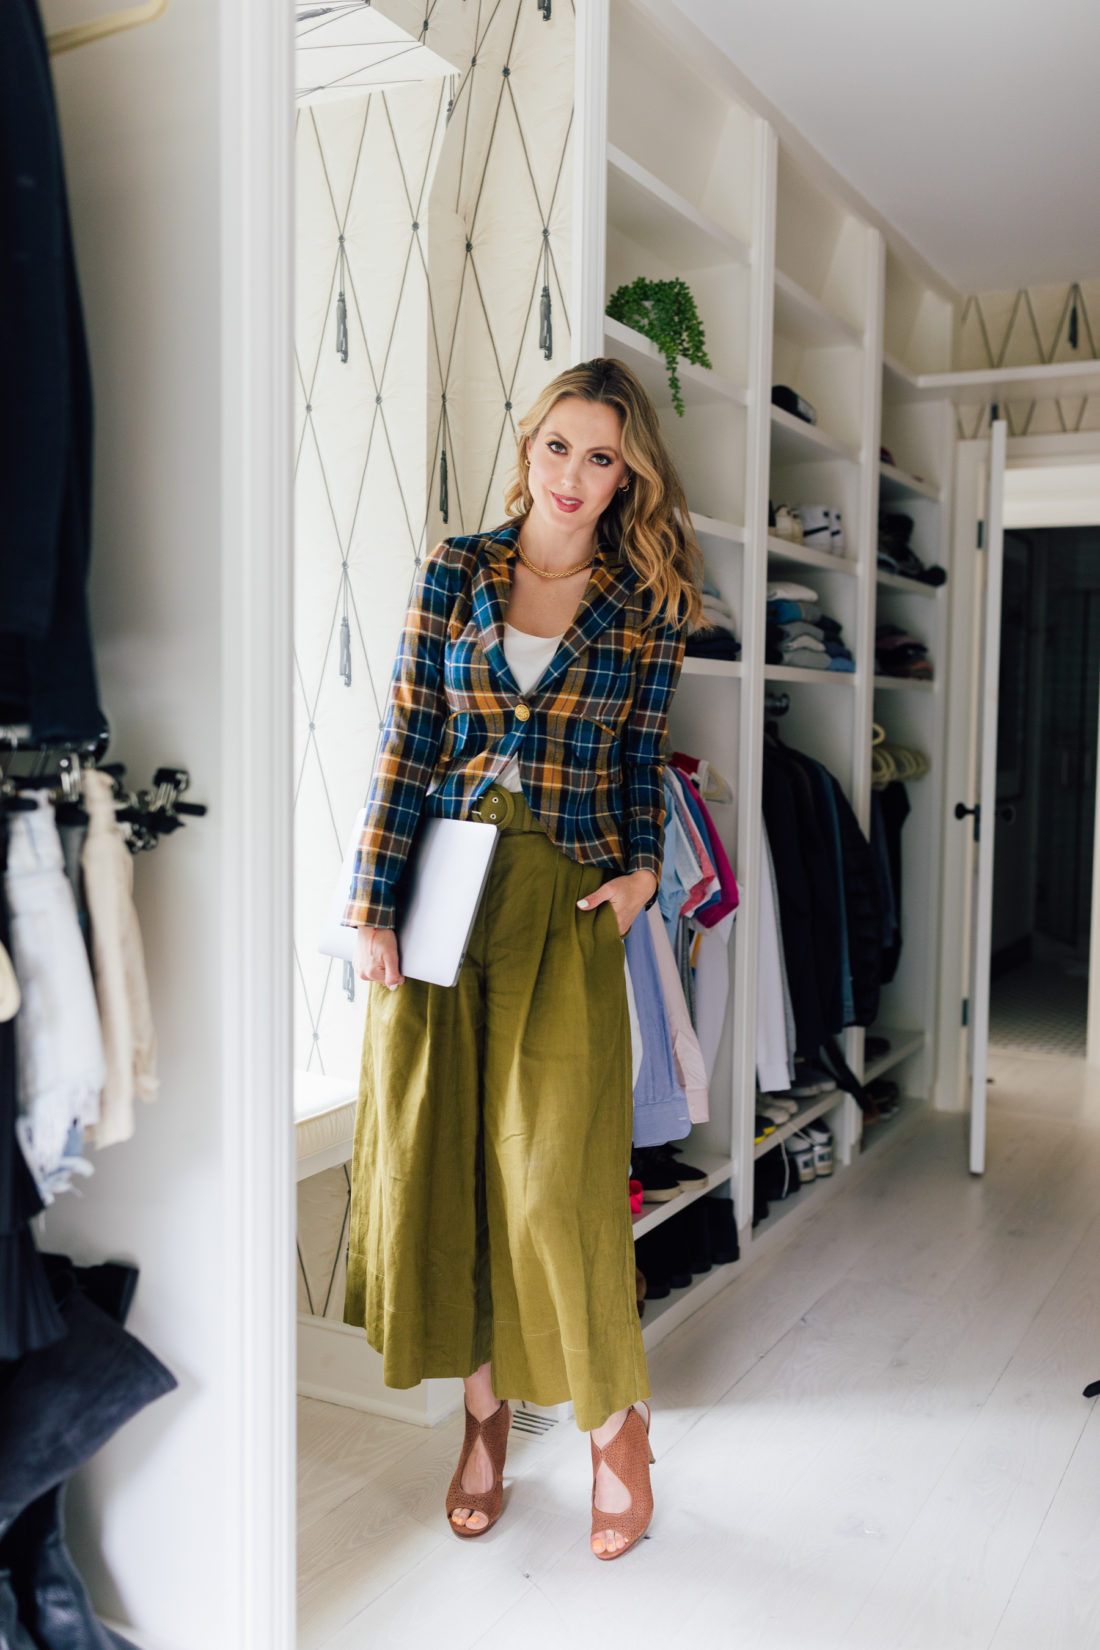 Eva Amurri Martino wears a plaid blazer in her walk-in closet